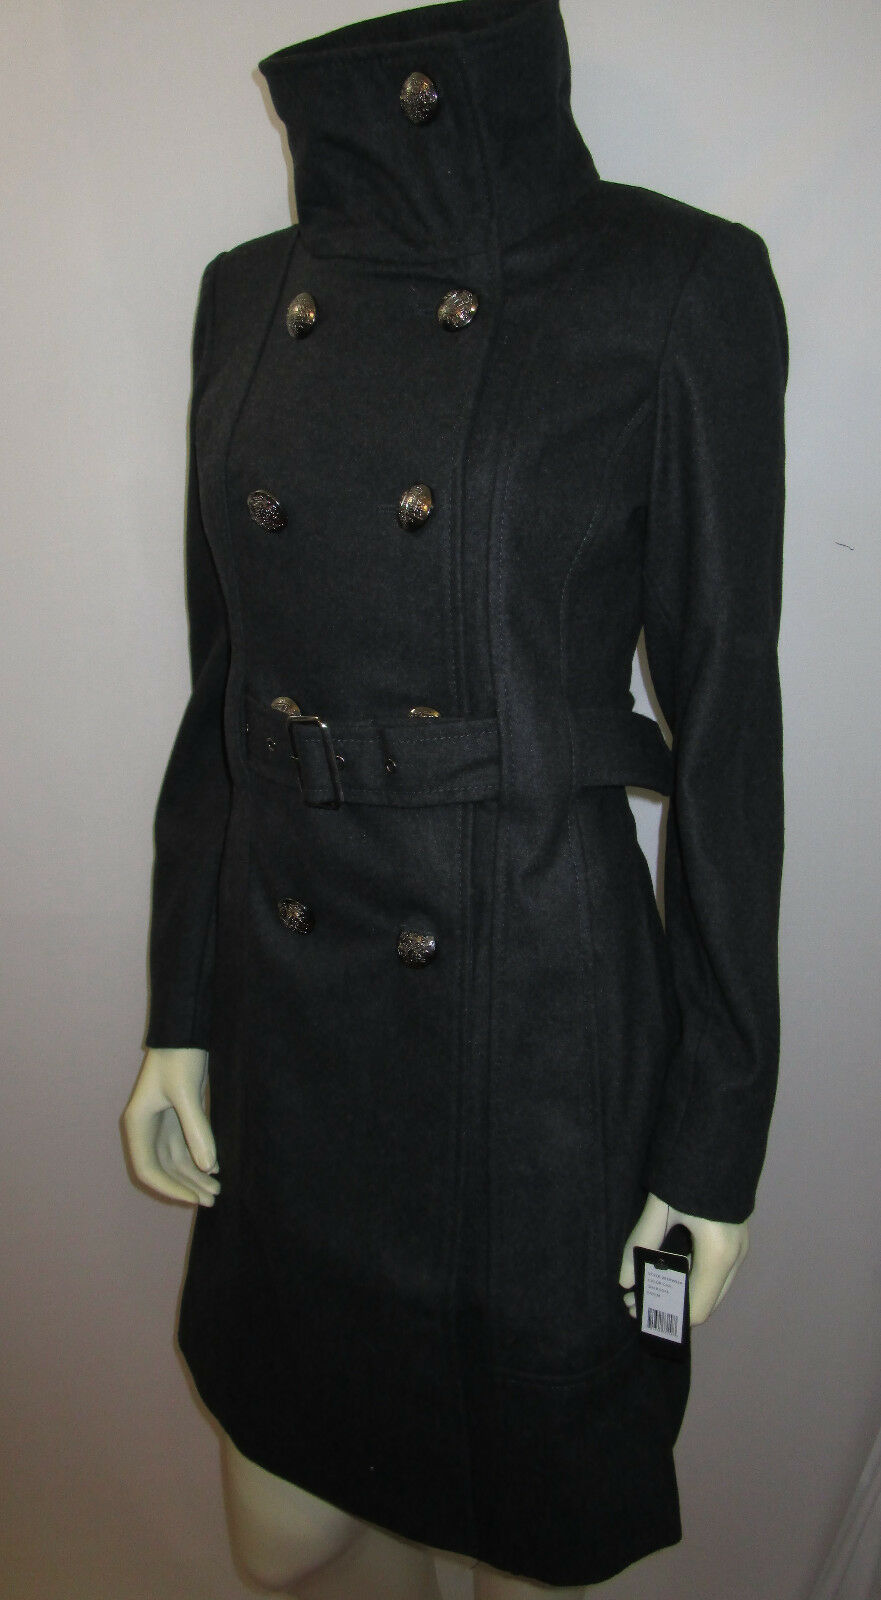 GUESS charcol double breasted belted coat size md NEW WITH TAG